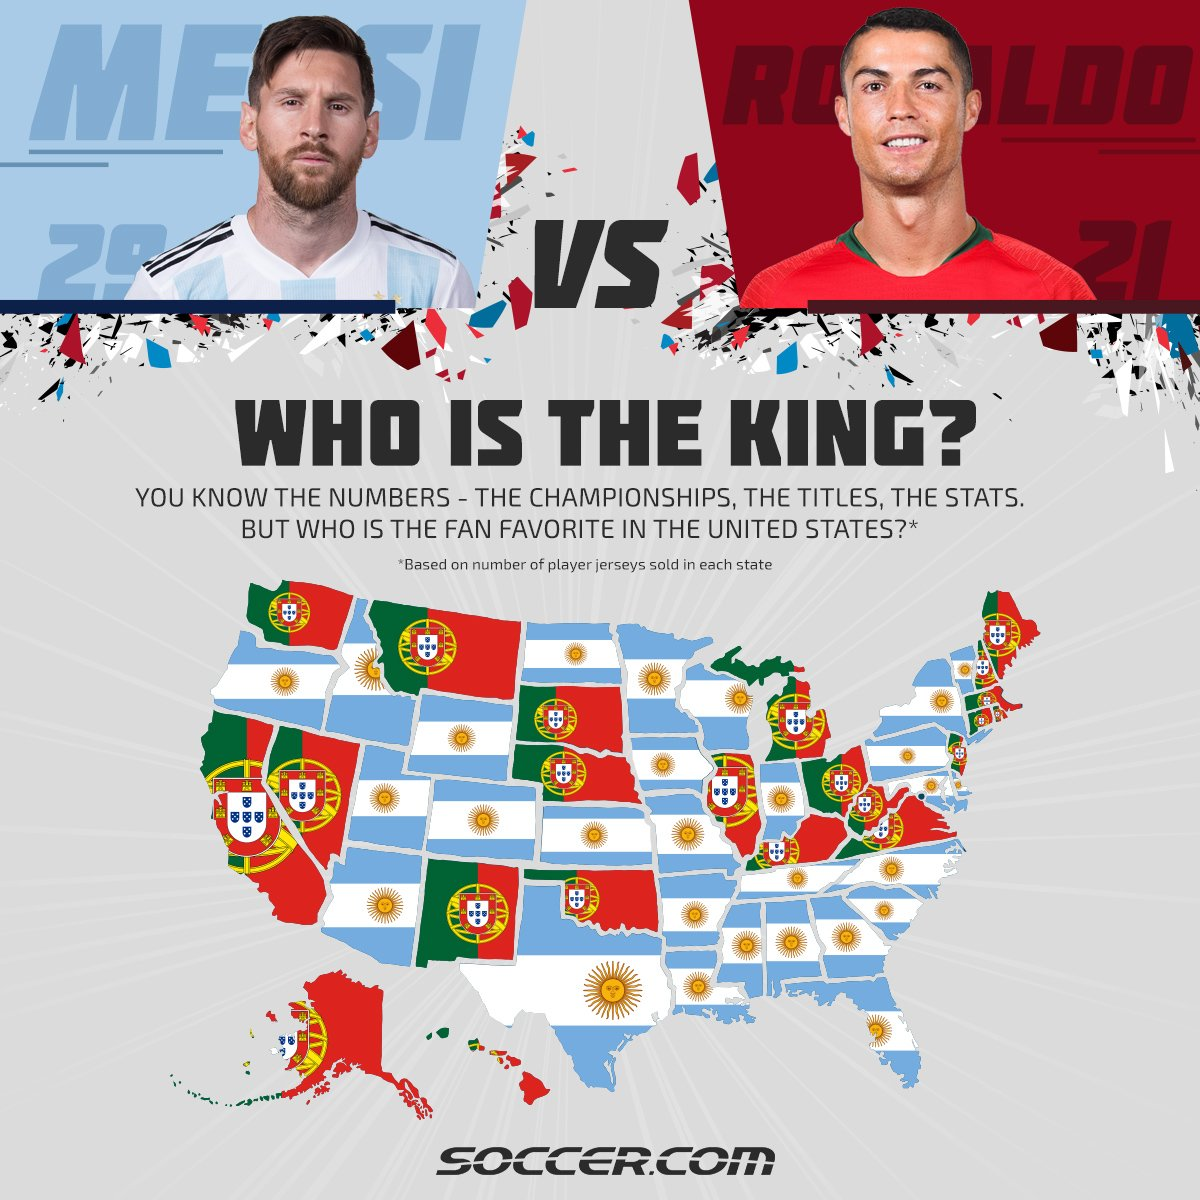 reputable site 2814a 11c39 Revealed: Messi vs Ronaldo US States Jersey Sales | Futbolgrid